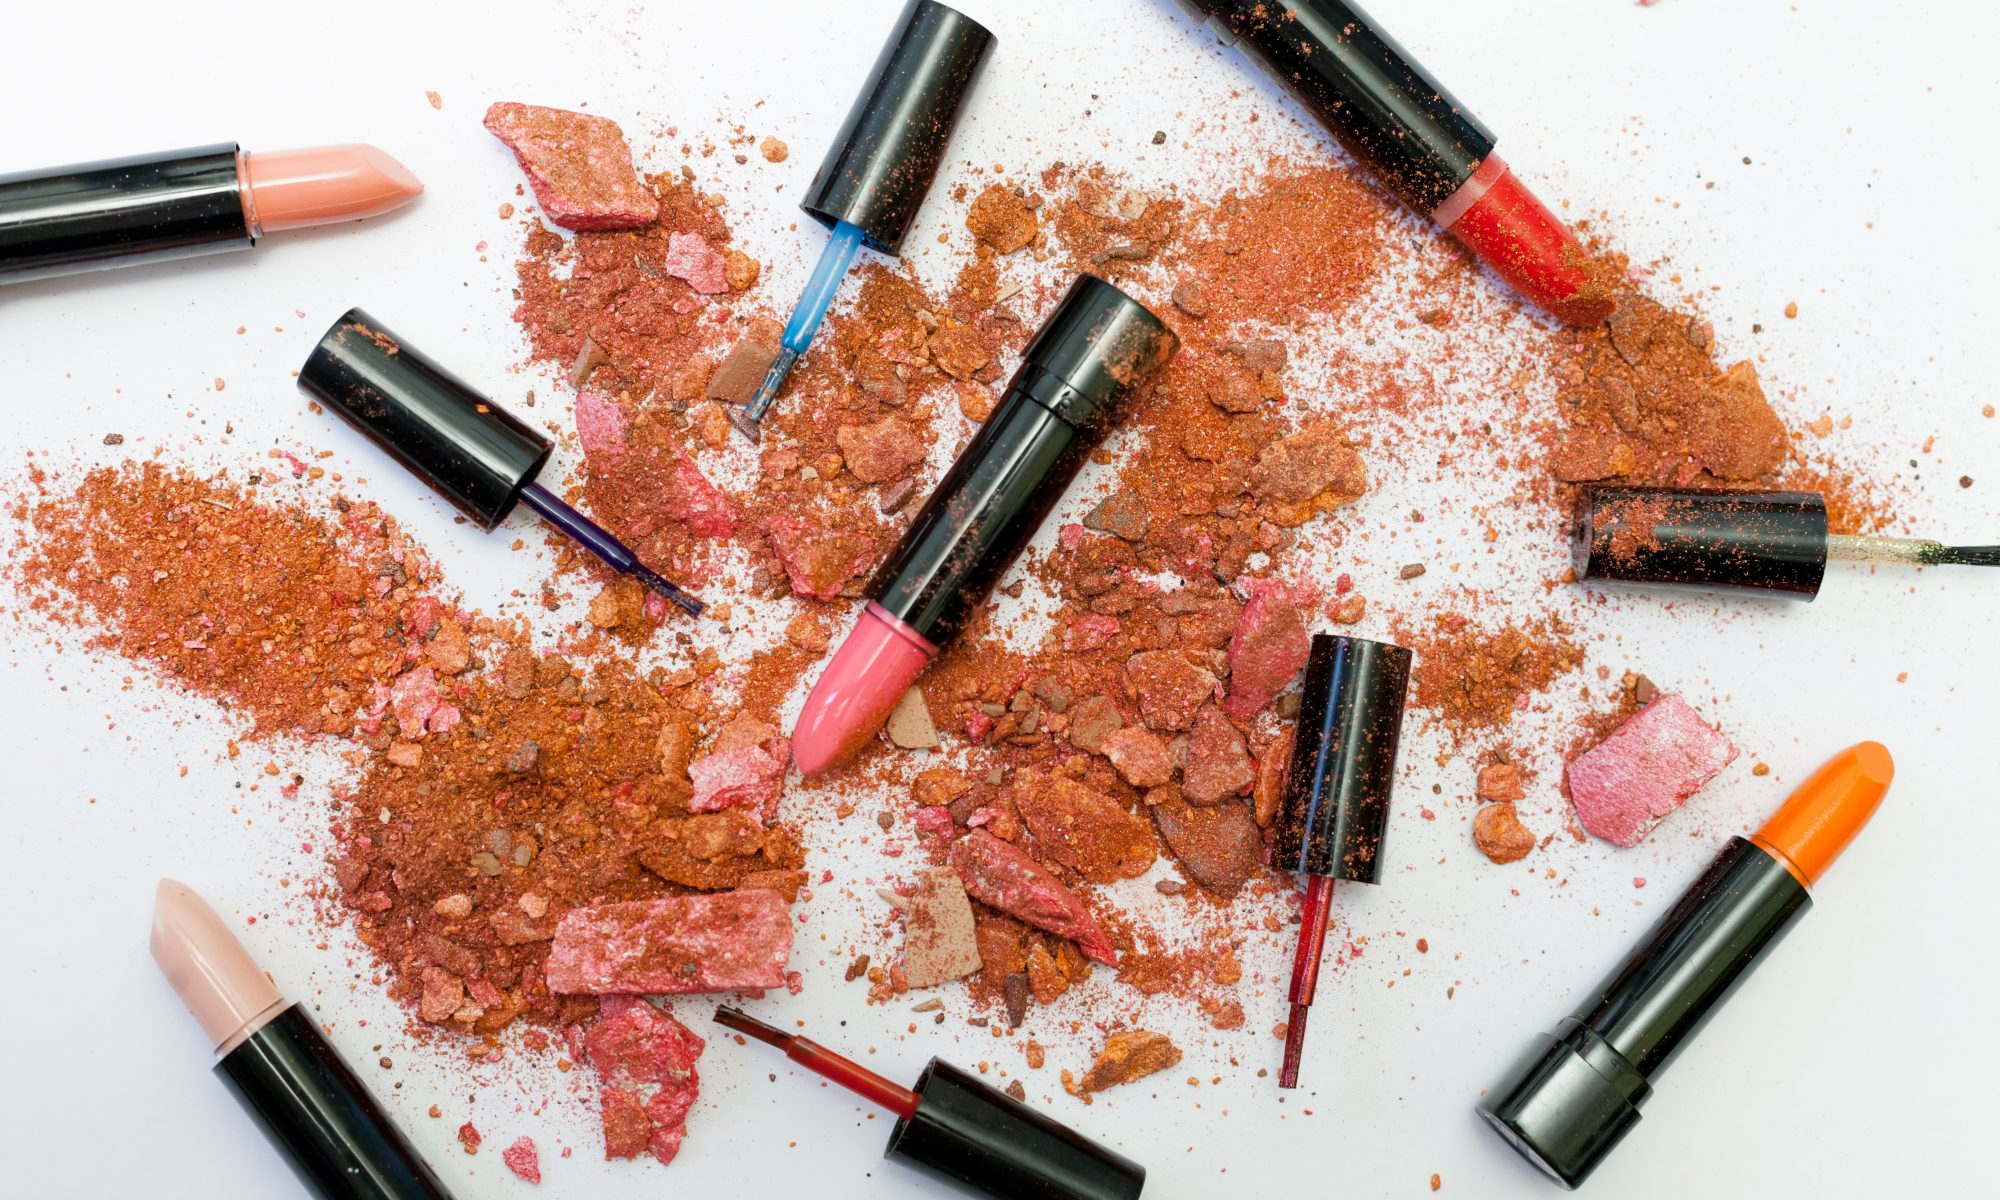 different color lipsticks on table